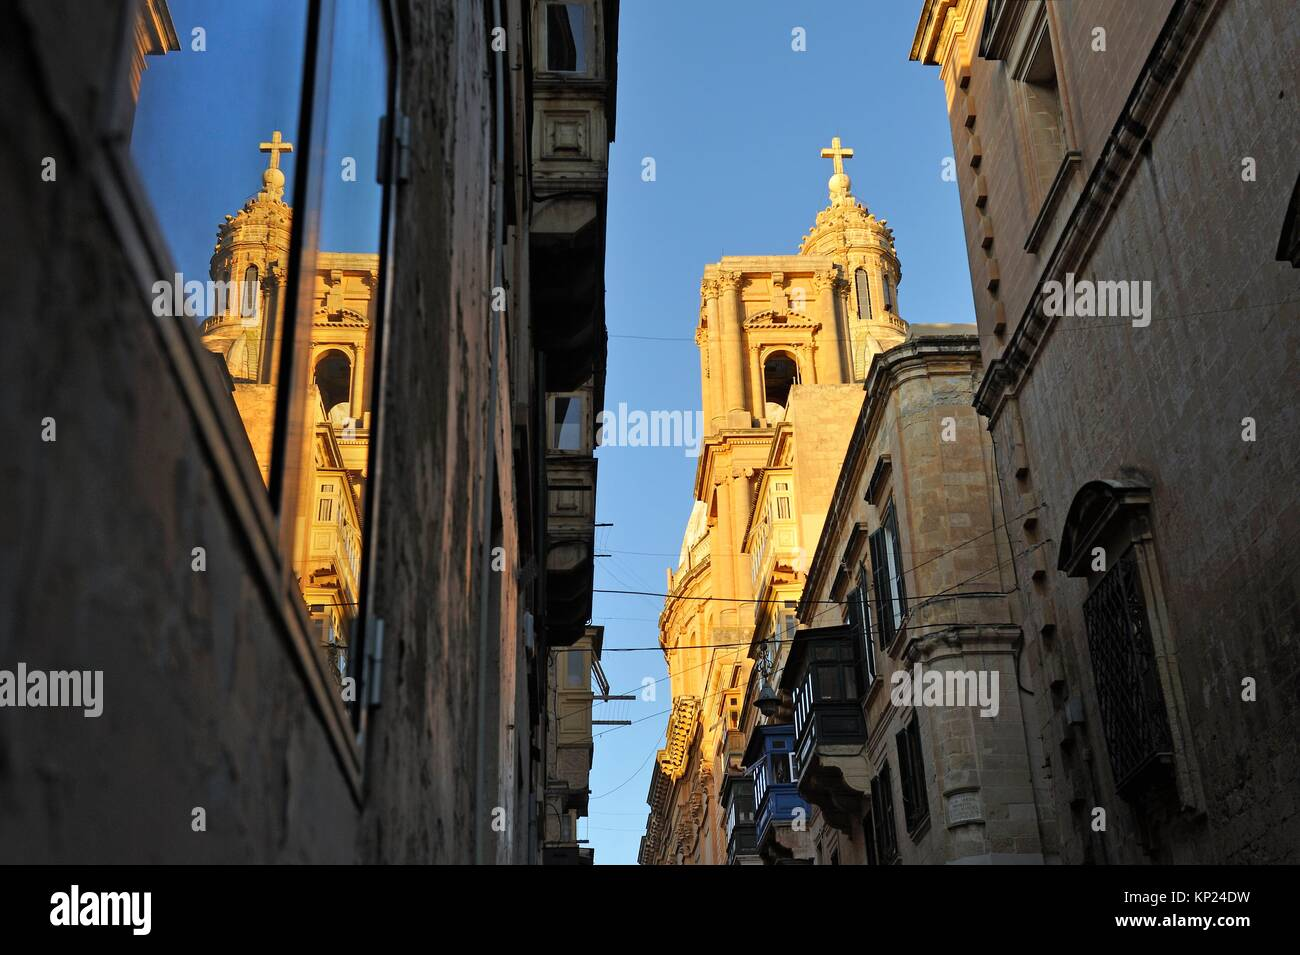 Our Lady of Mount Carmel Church seen from Old Mint Street, Valletta, Malta, Southern Europe. - Stock Image